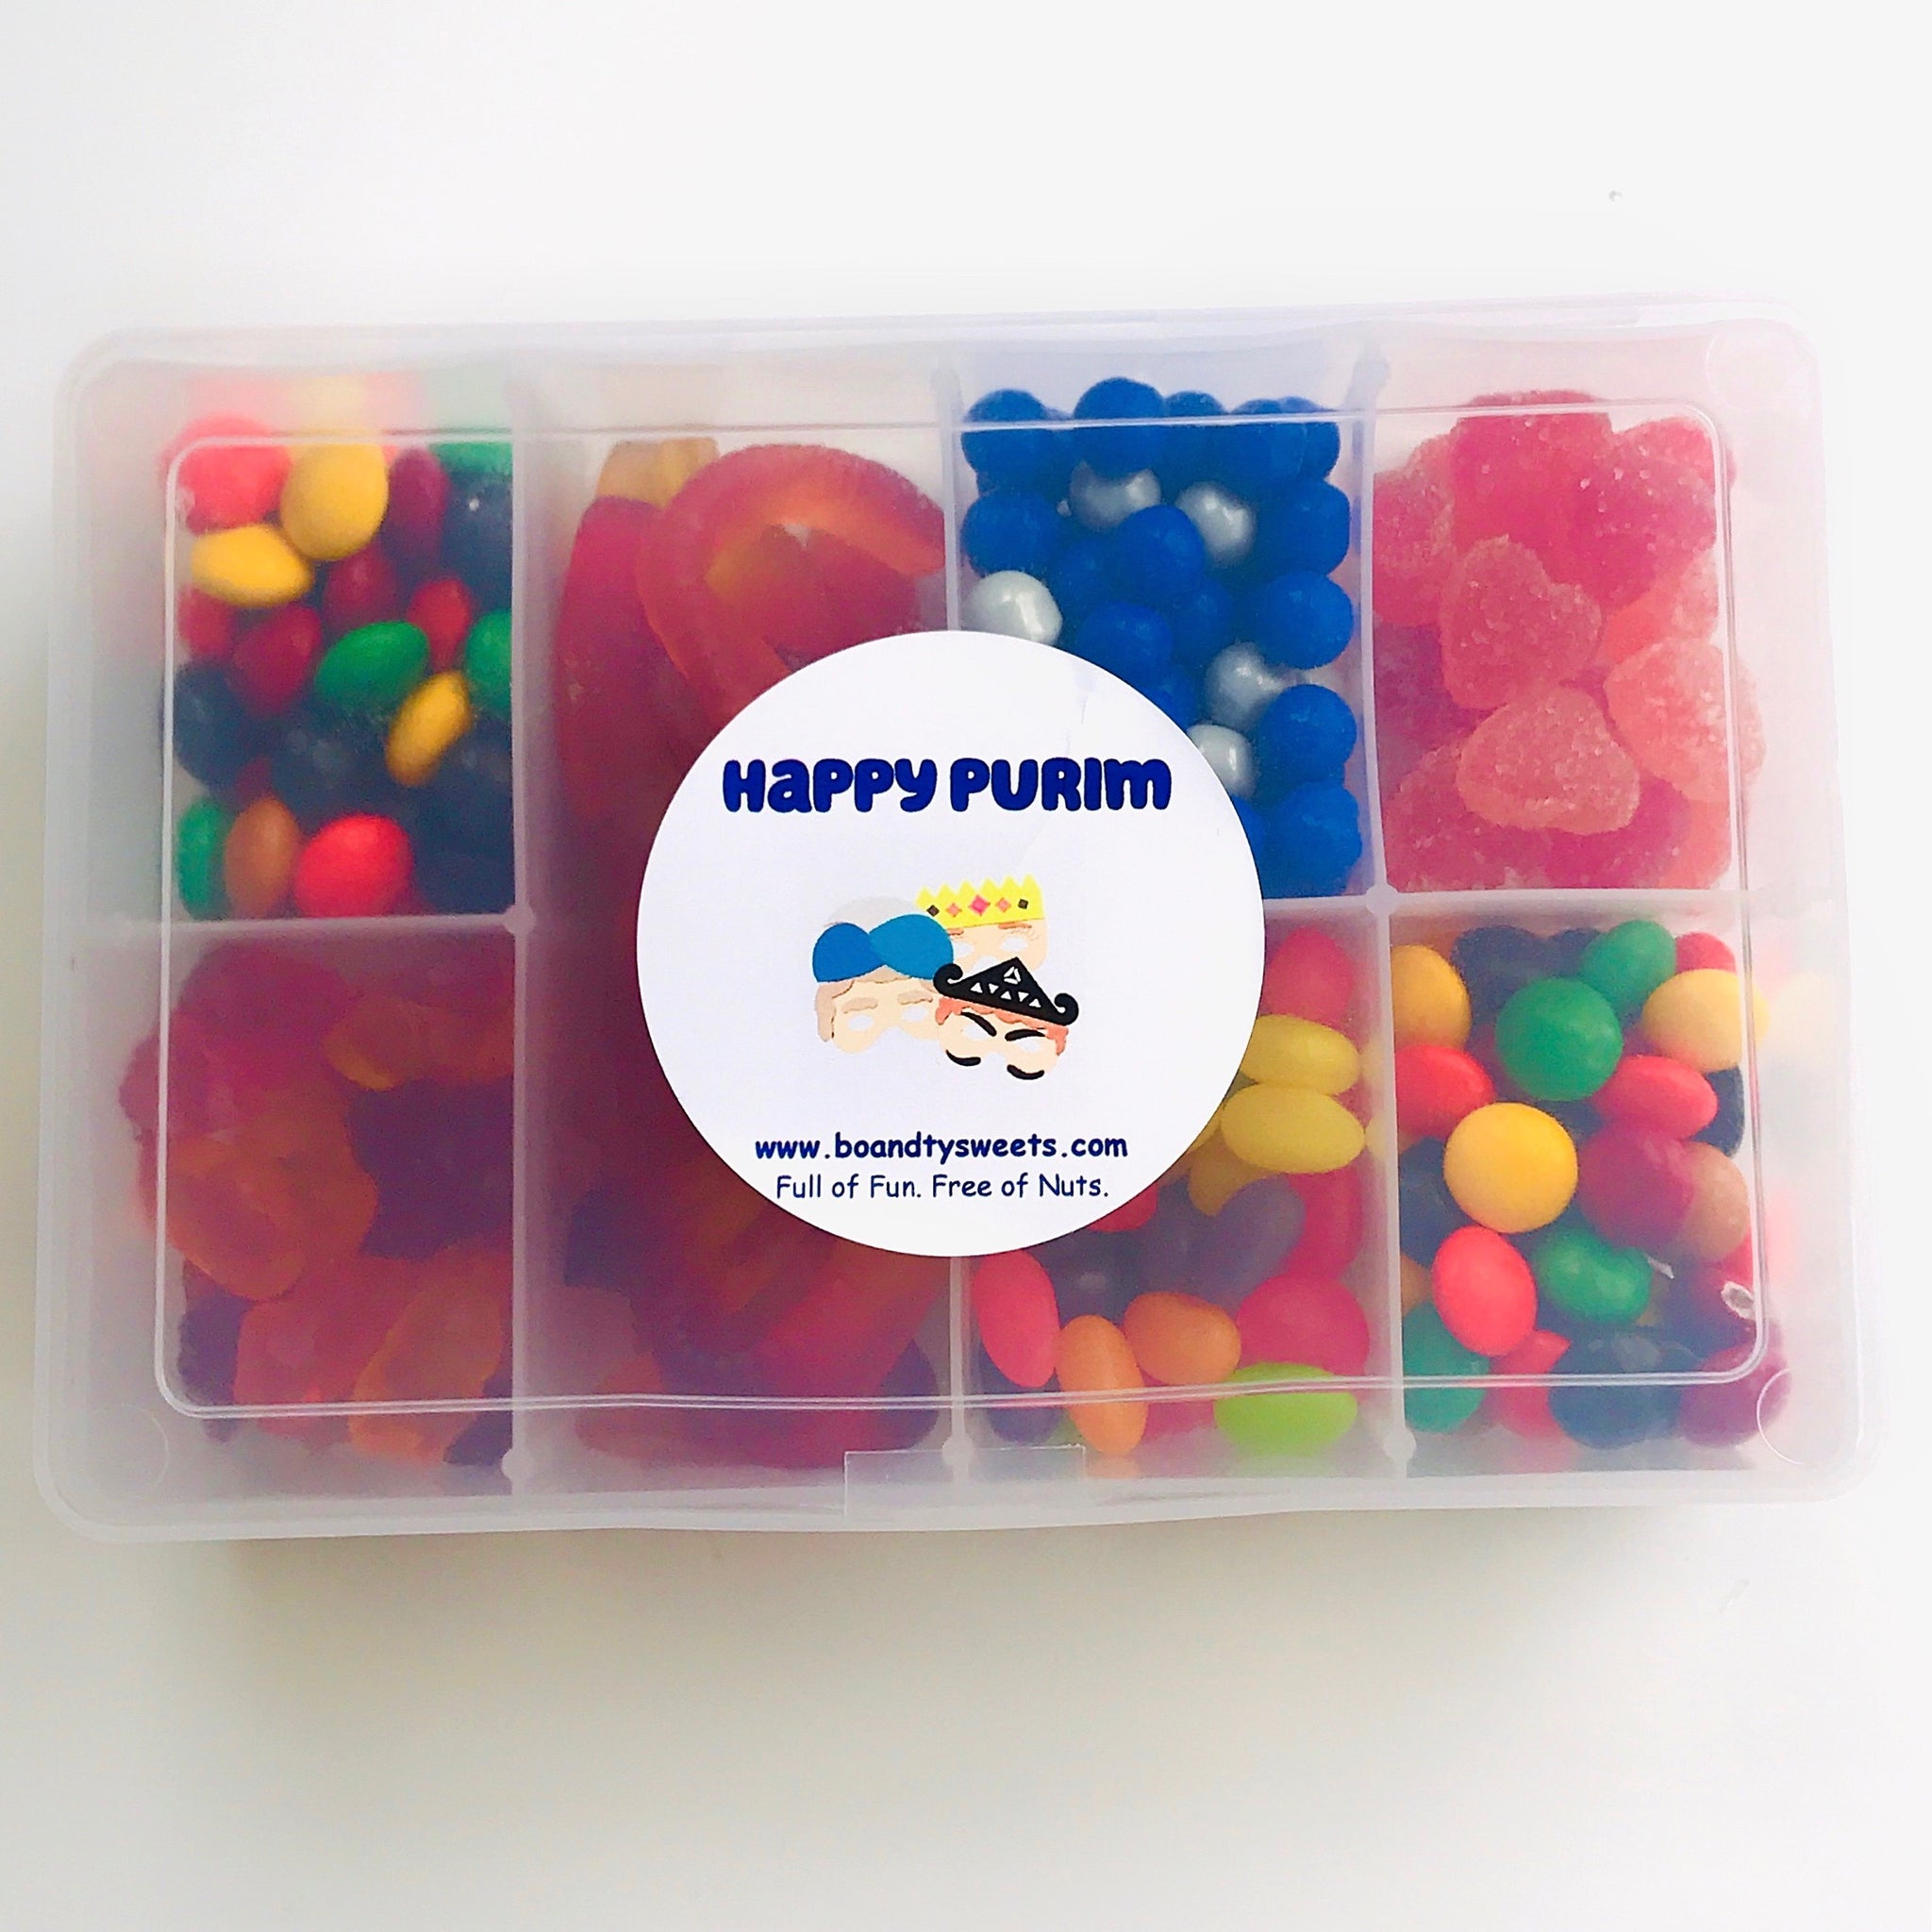 Allergy friendly candy for Purim